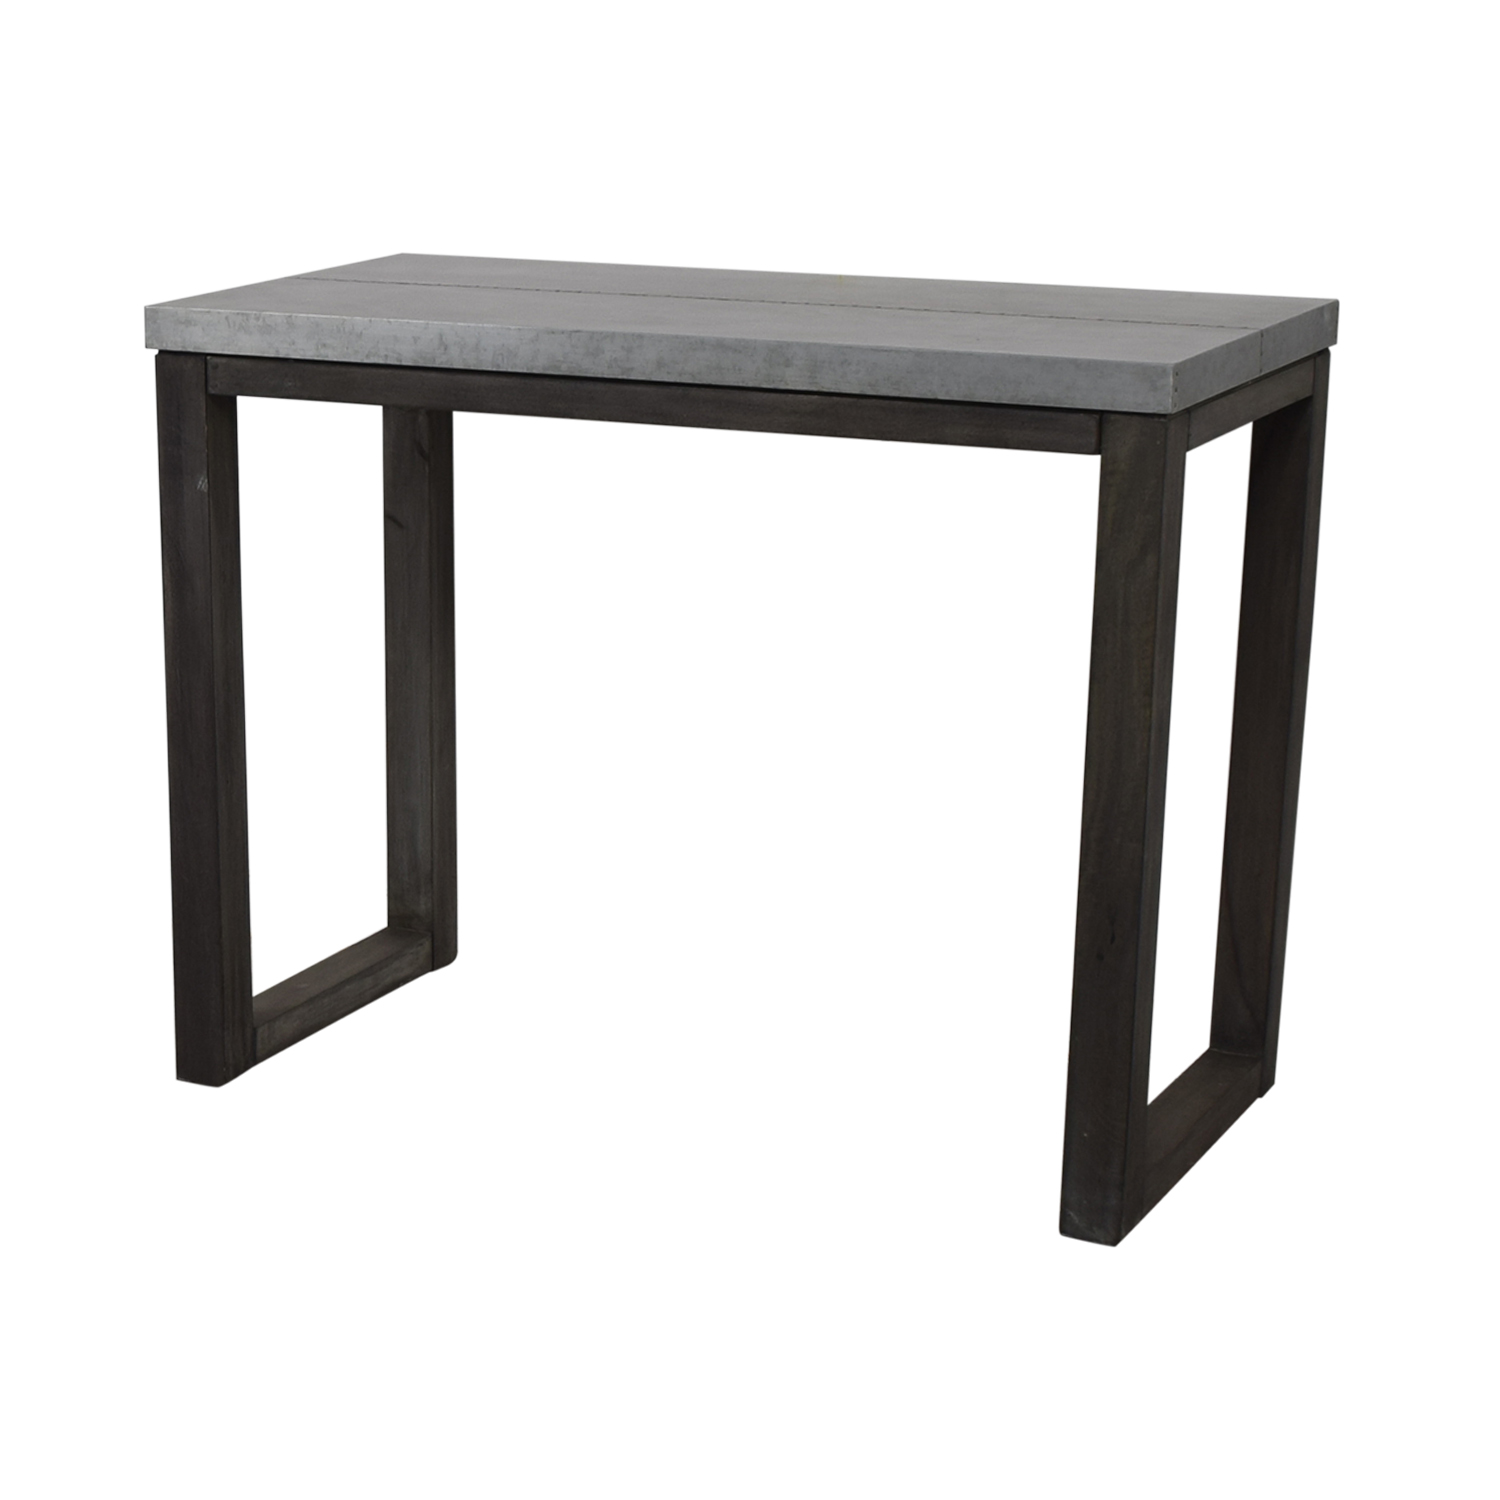 CB2 CB2 Stern Metal Counter Table price